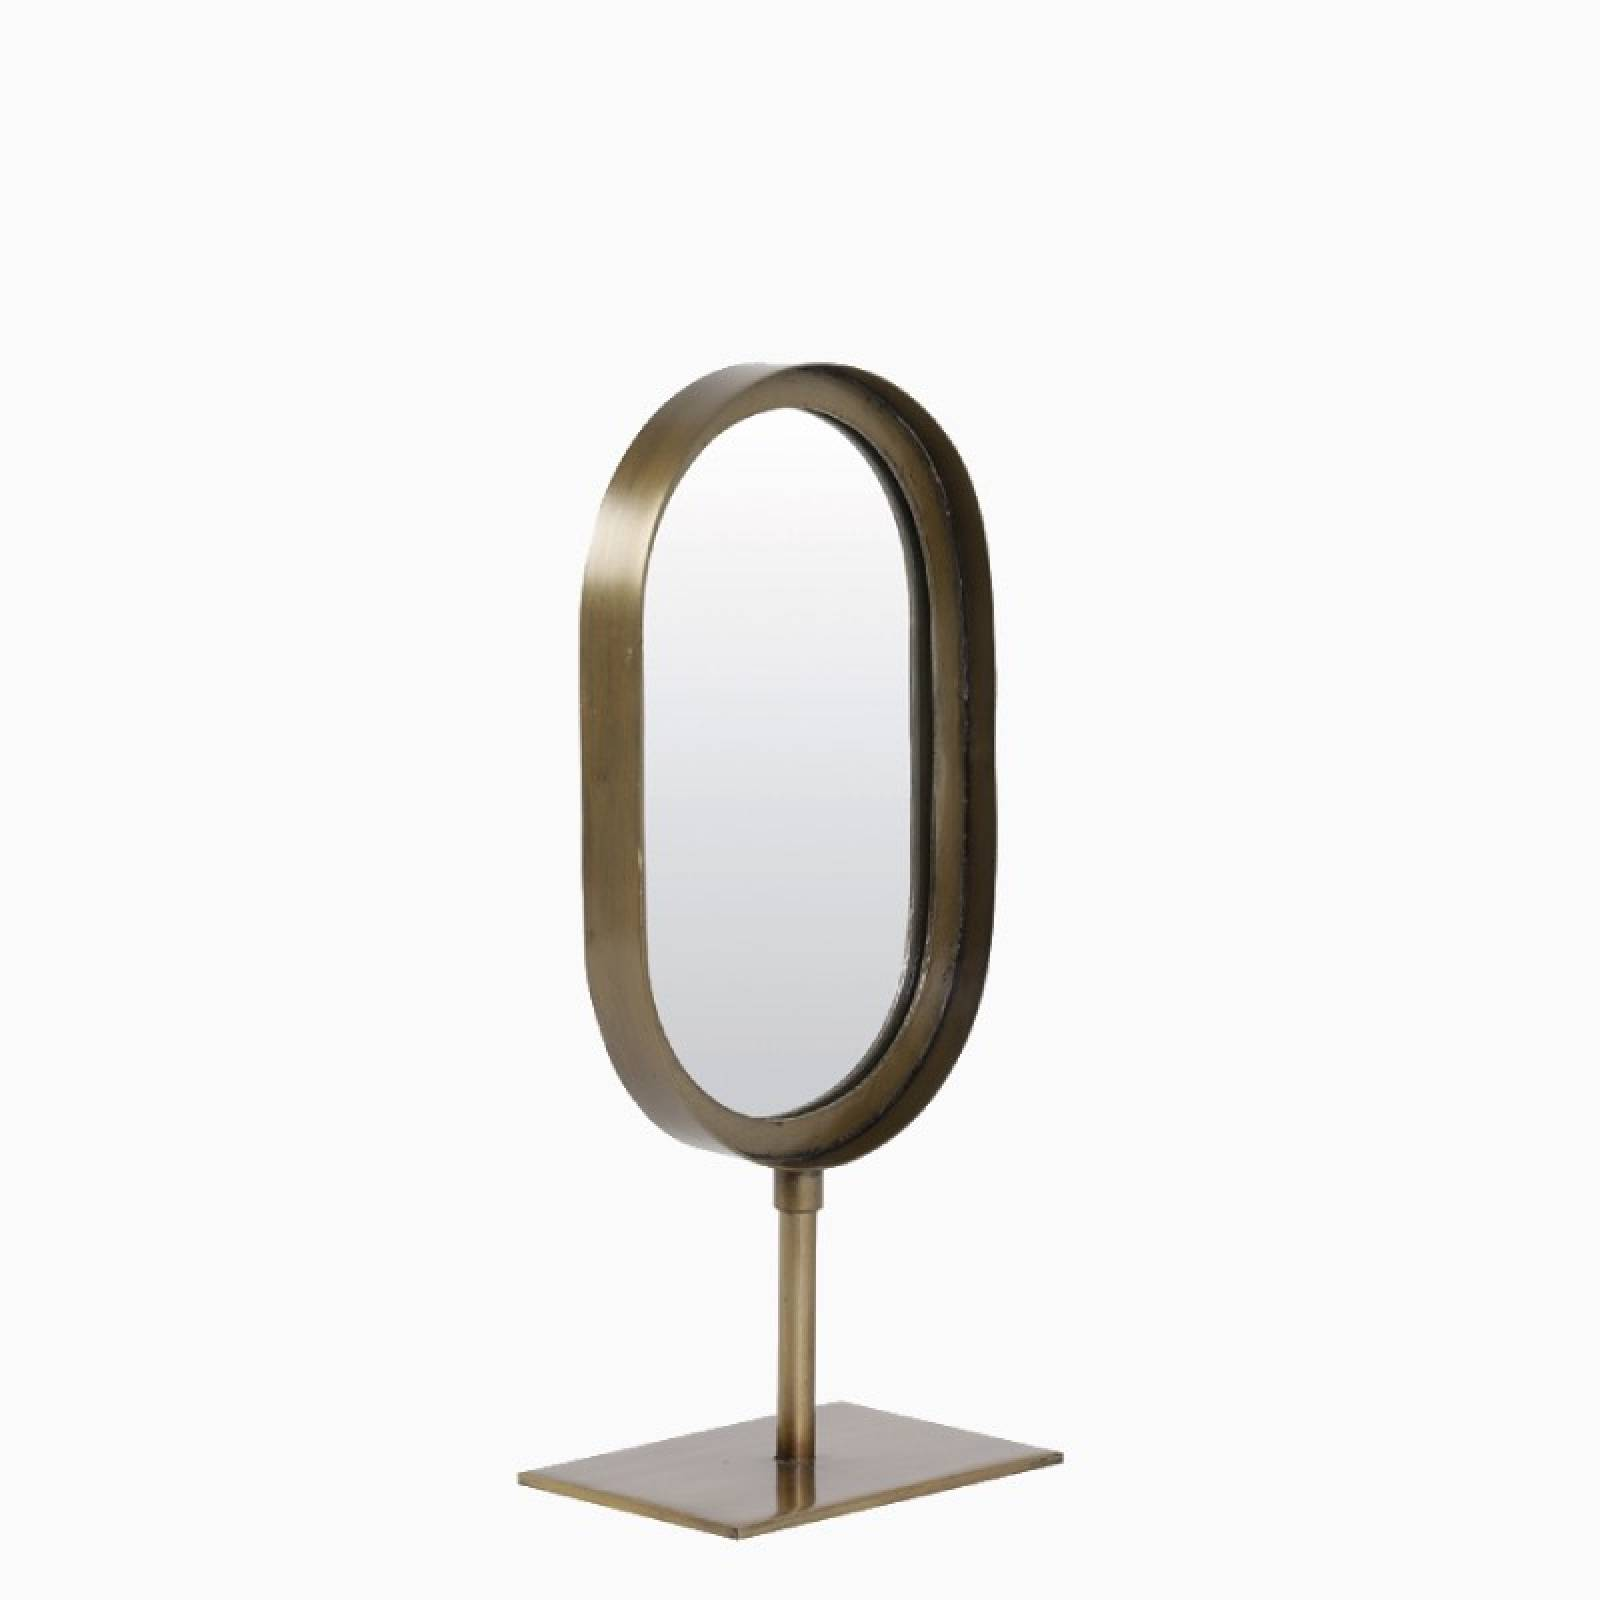 Small Oval Mirror With Metal Frame On Stand In Brass 16x35cm